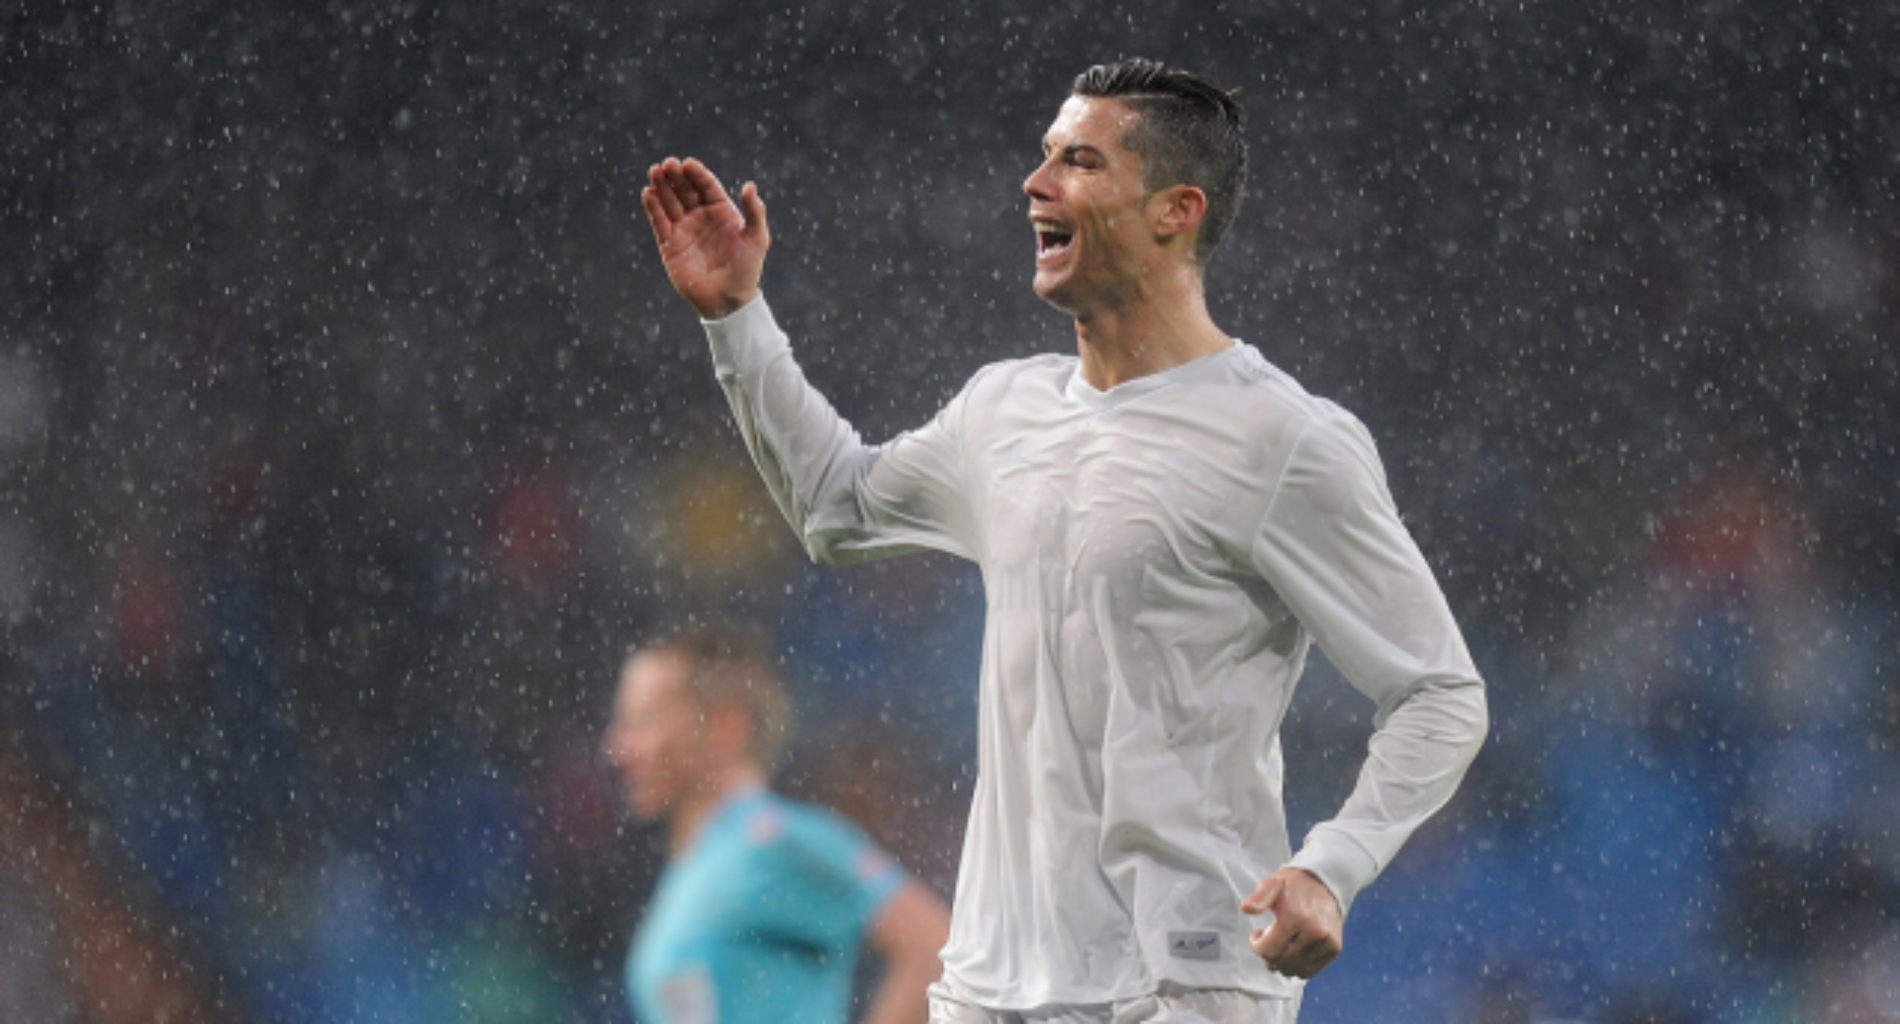 Cristiano Ronaldo targeted with homophobic abuse during game